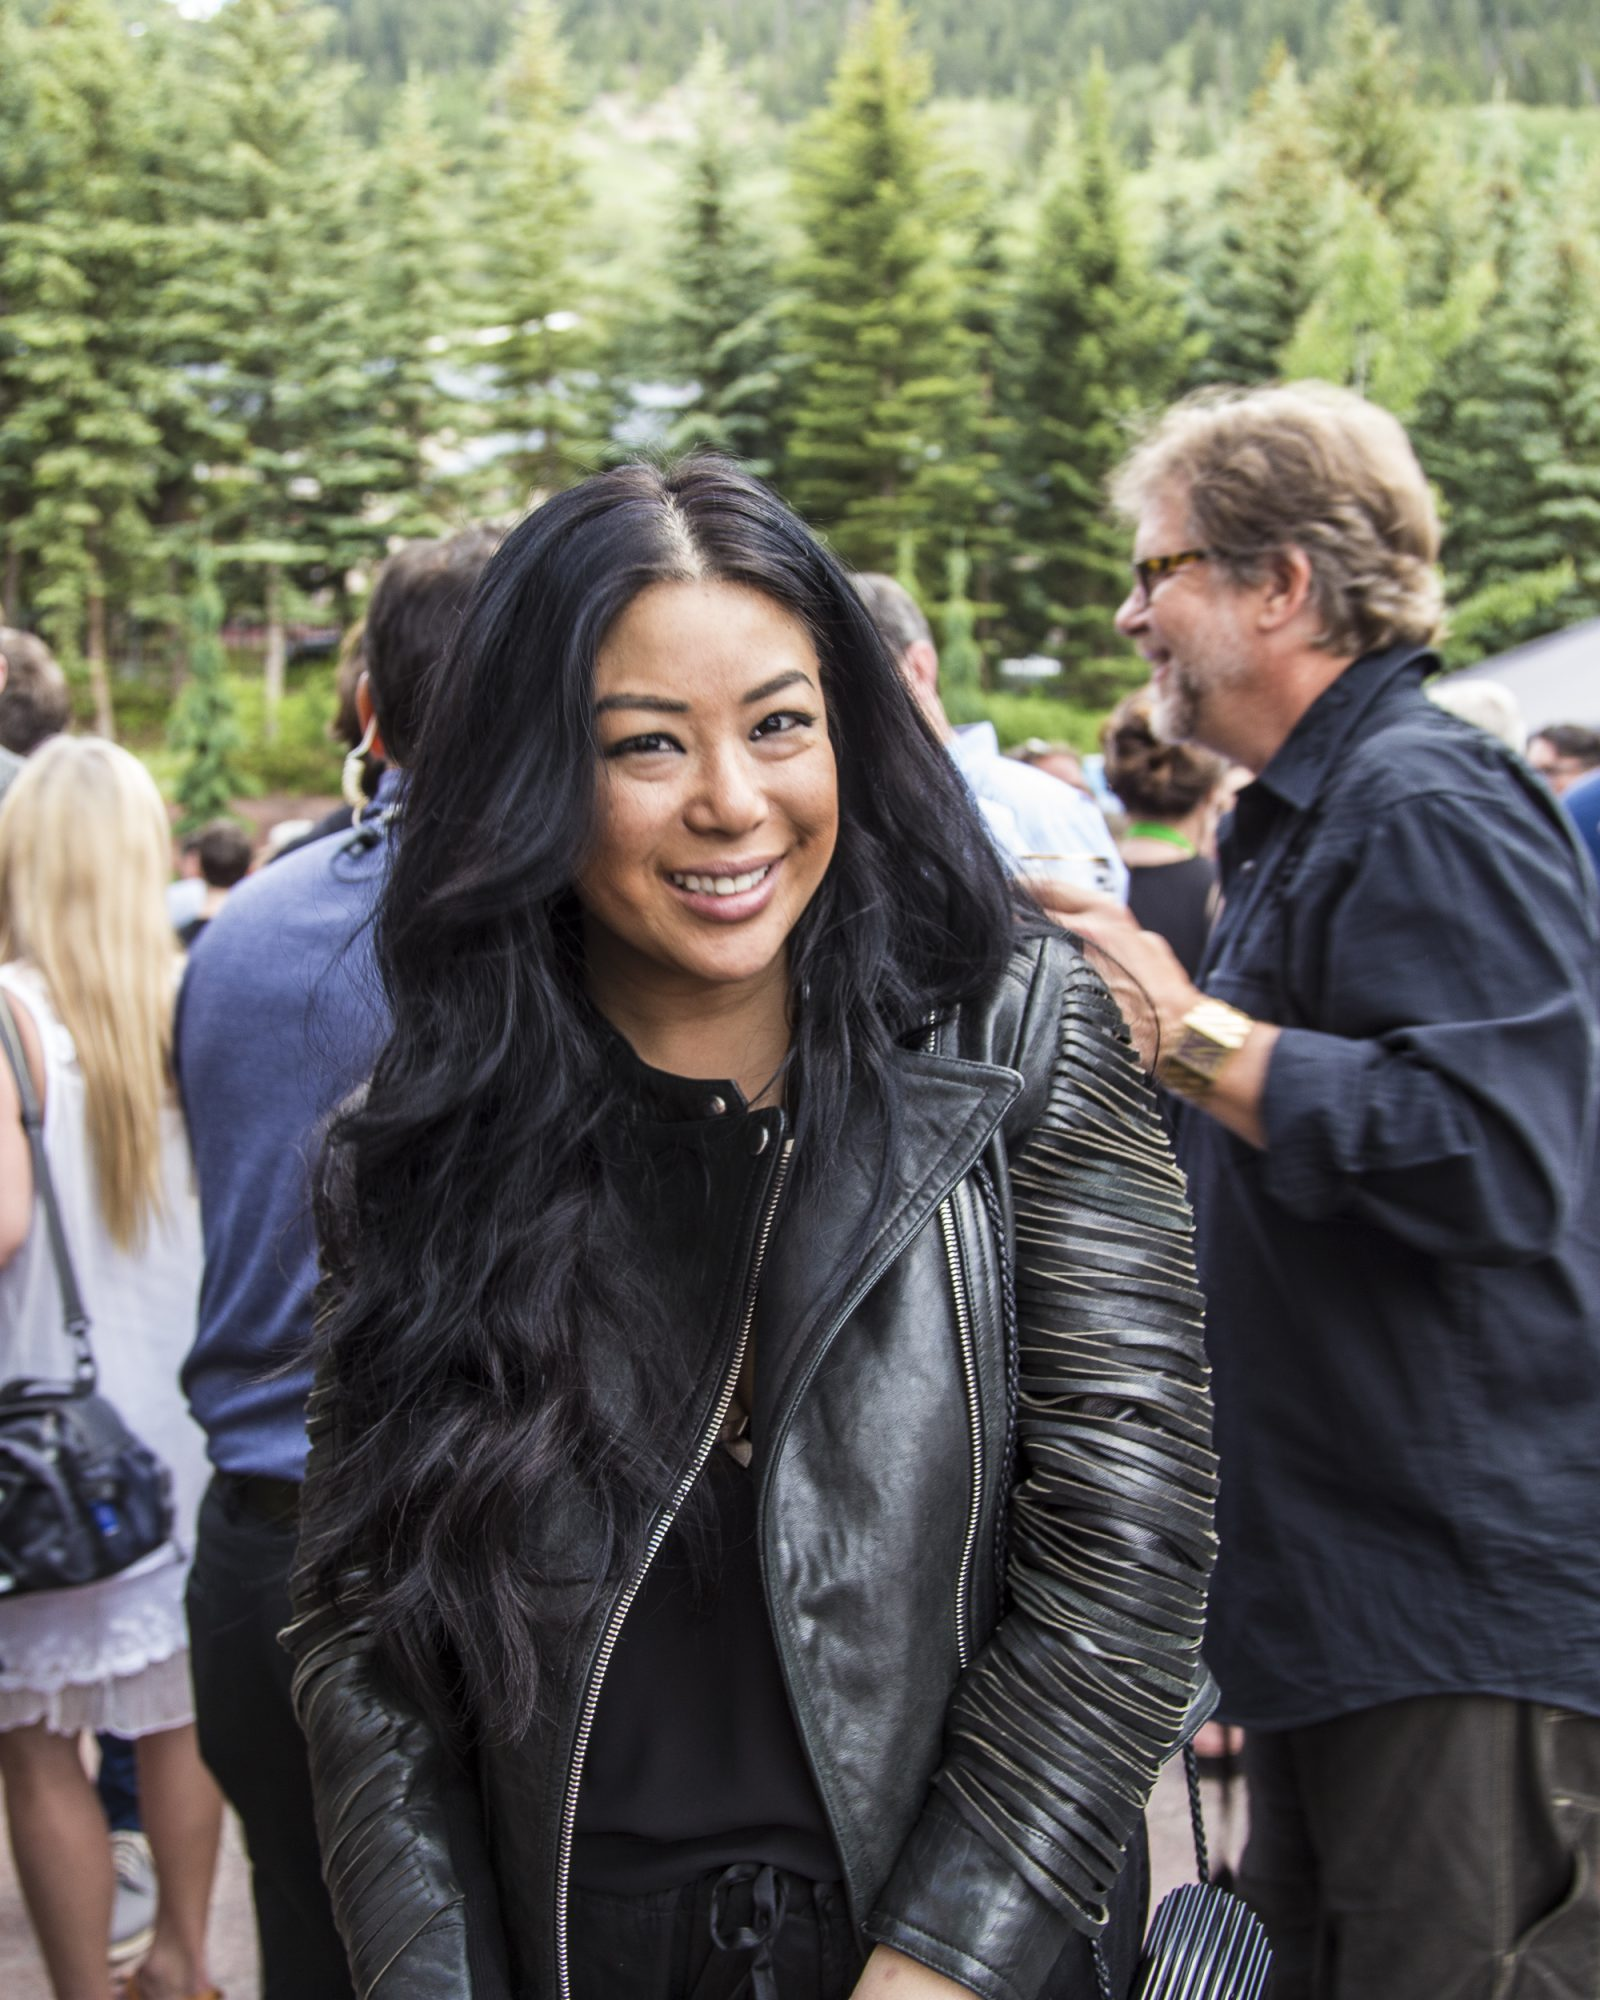 Best New Chef 2017 Angie Mar of The Beatrice Inn attends the Food & Wine Classic in Aspen welcome reception.